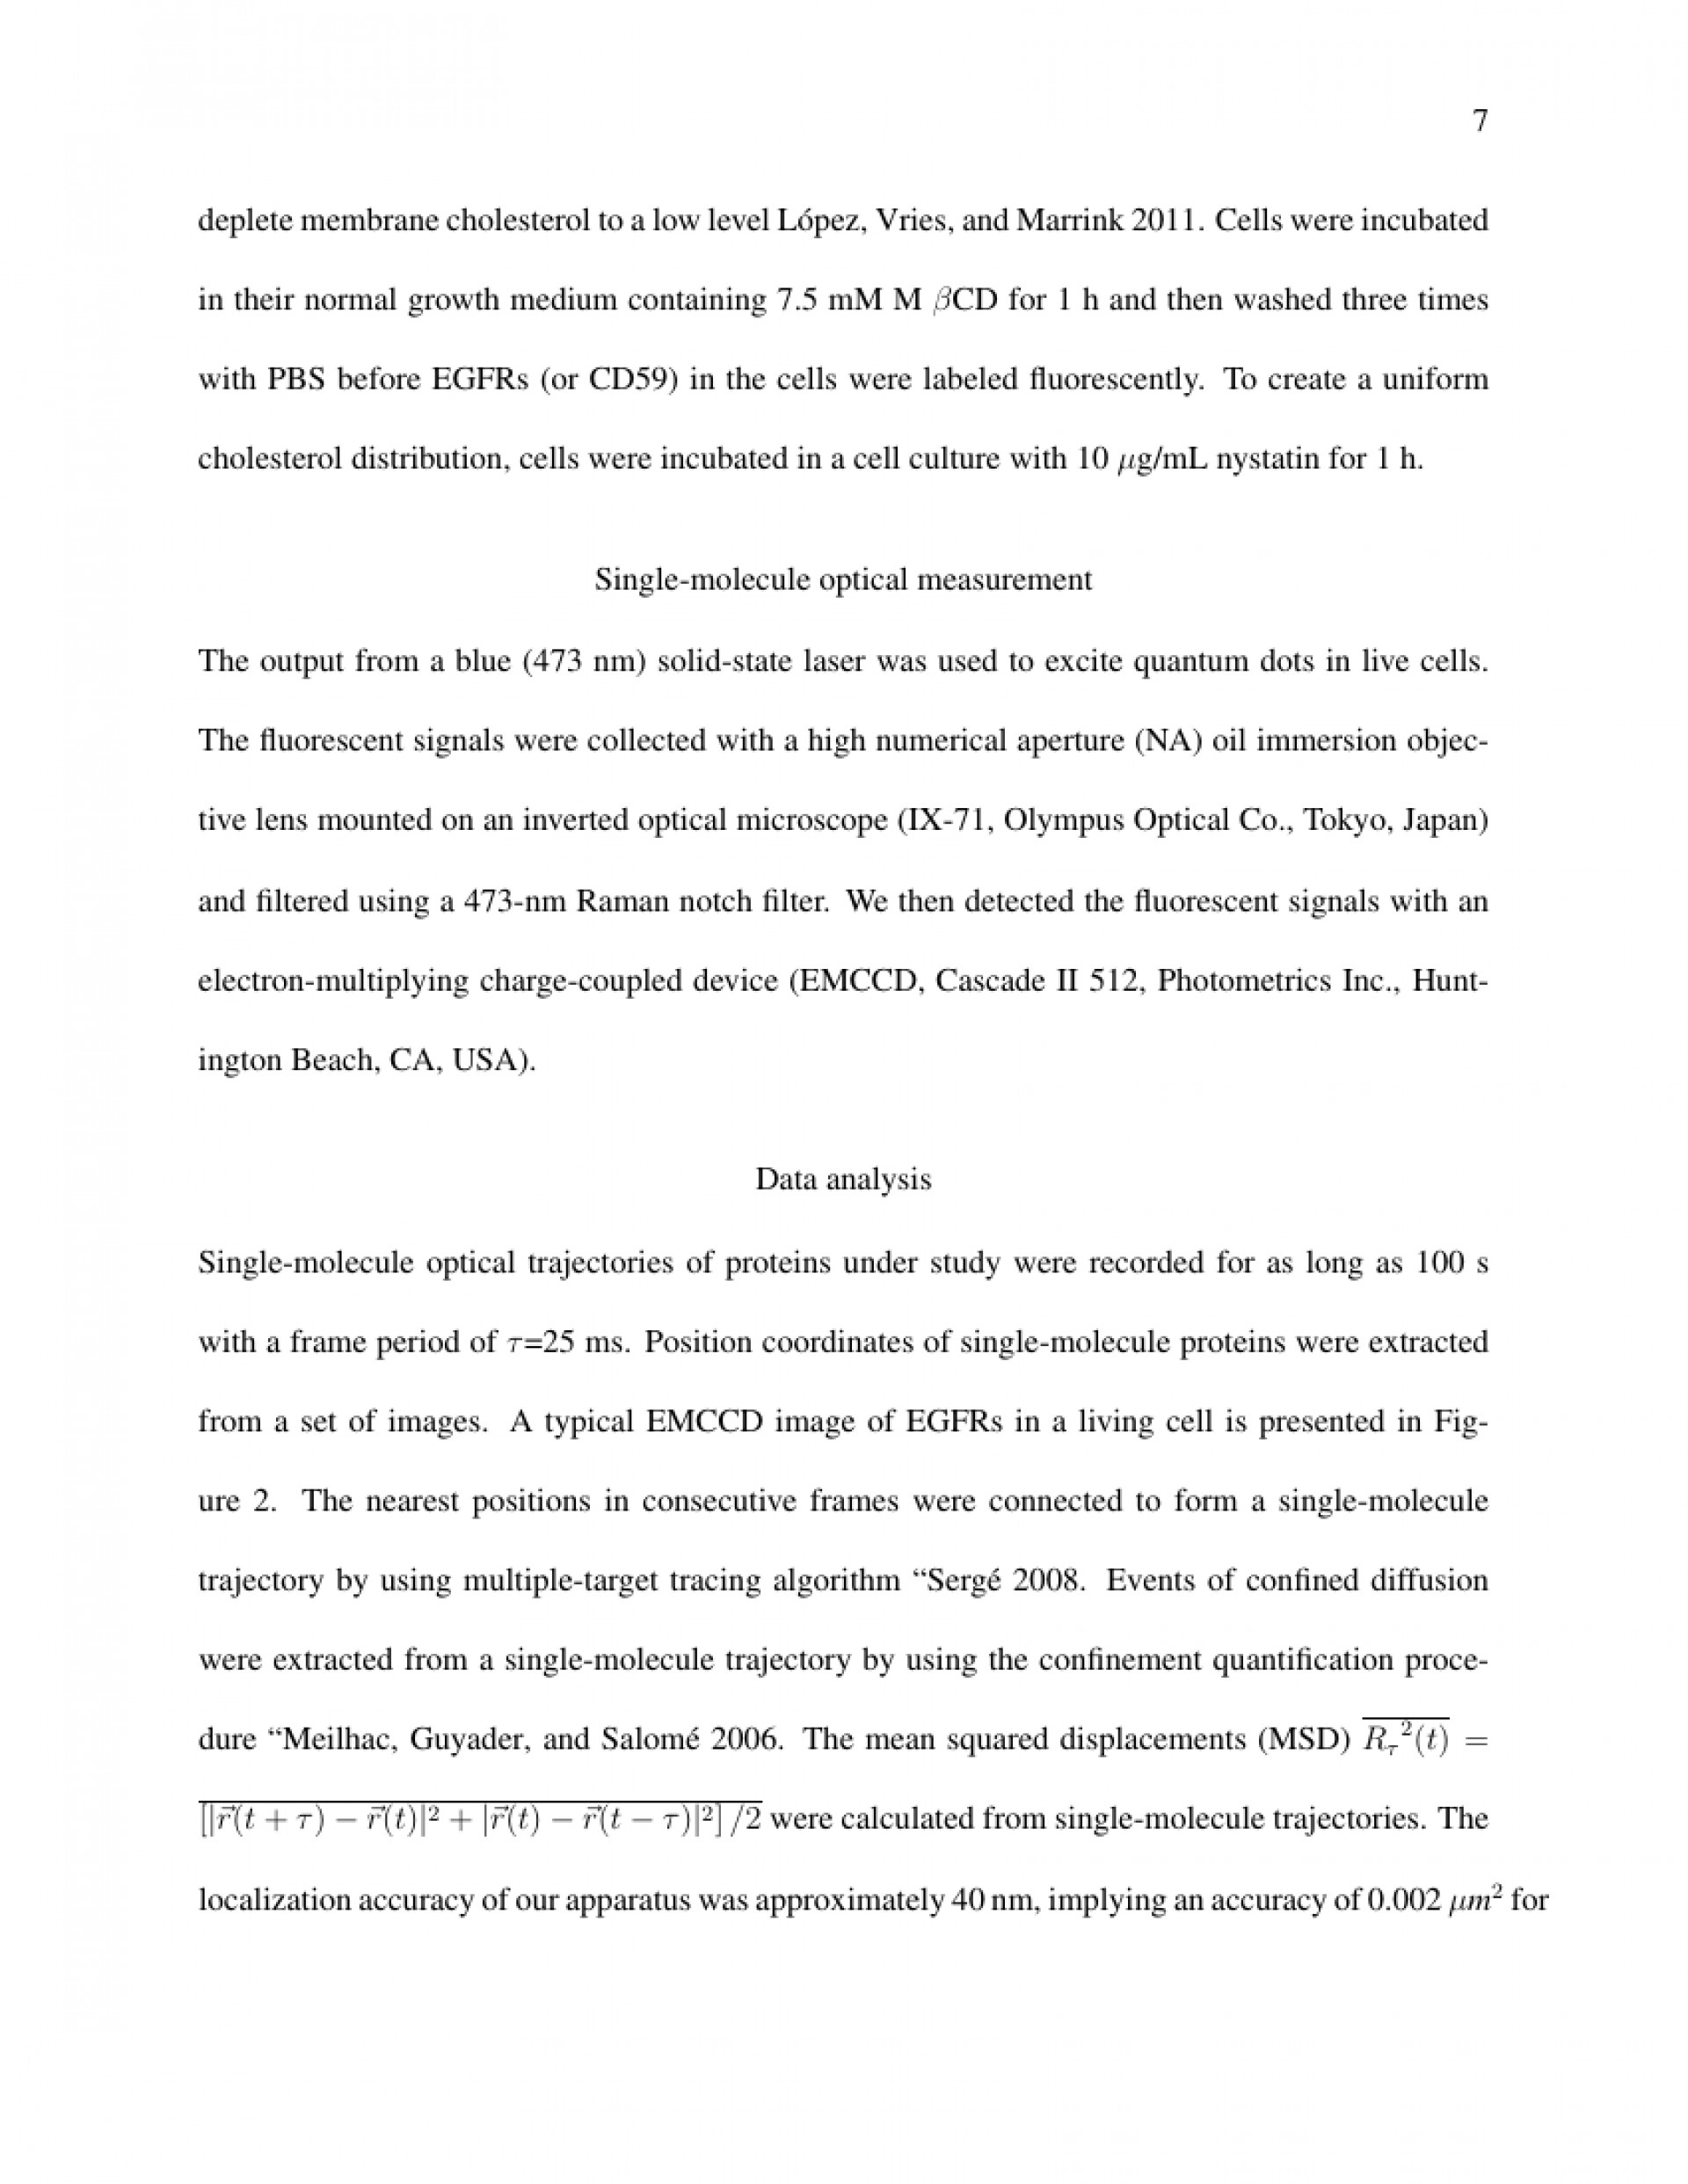 005 Article Research Paper Format Of Incredible The Ieee Example Sample Chapter 1 1920